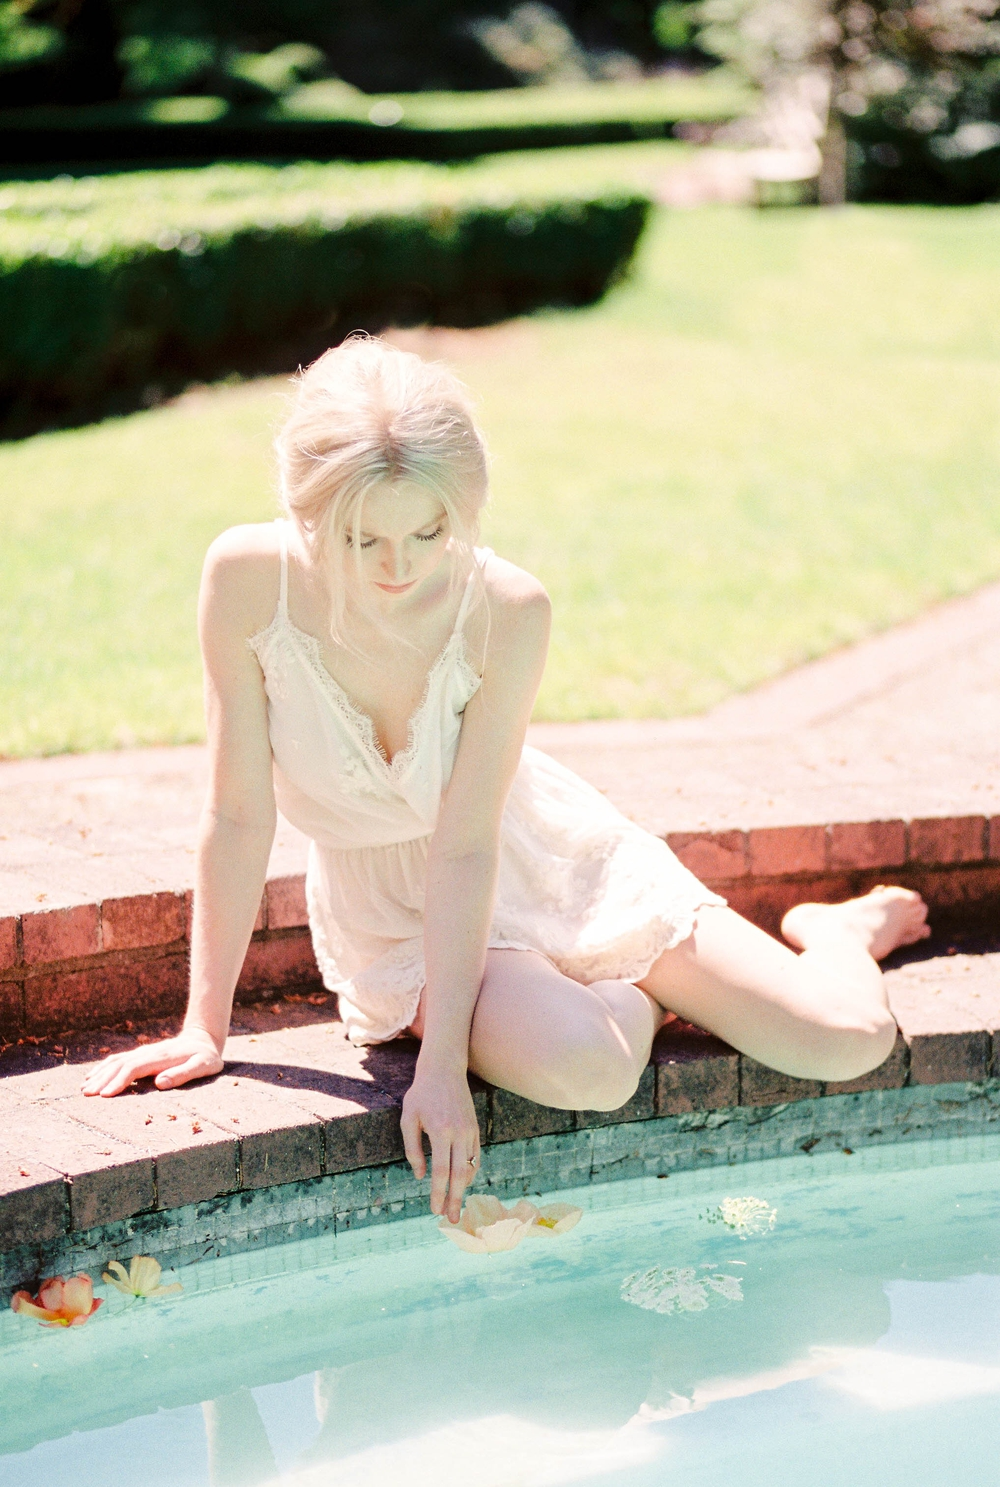 blonde woman in a white negligee lightly touching a flower floating in a fountain pool